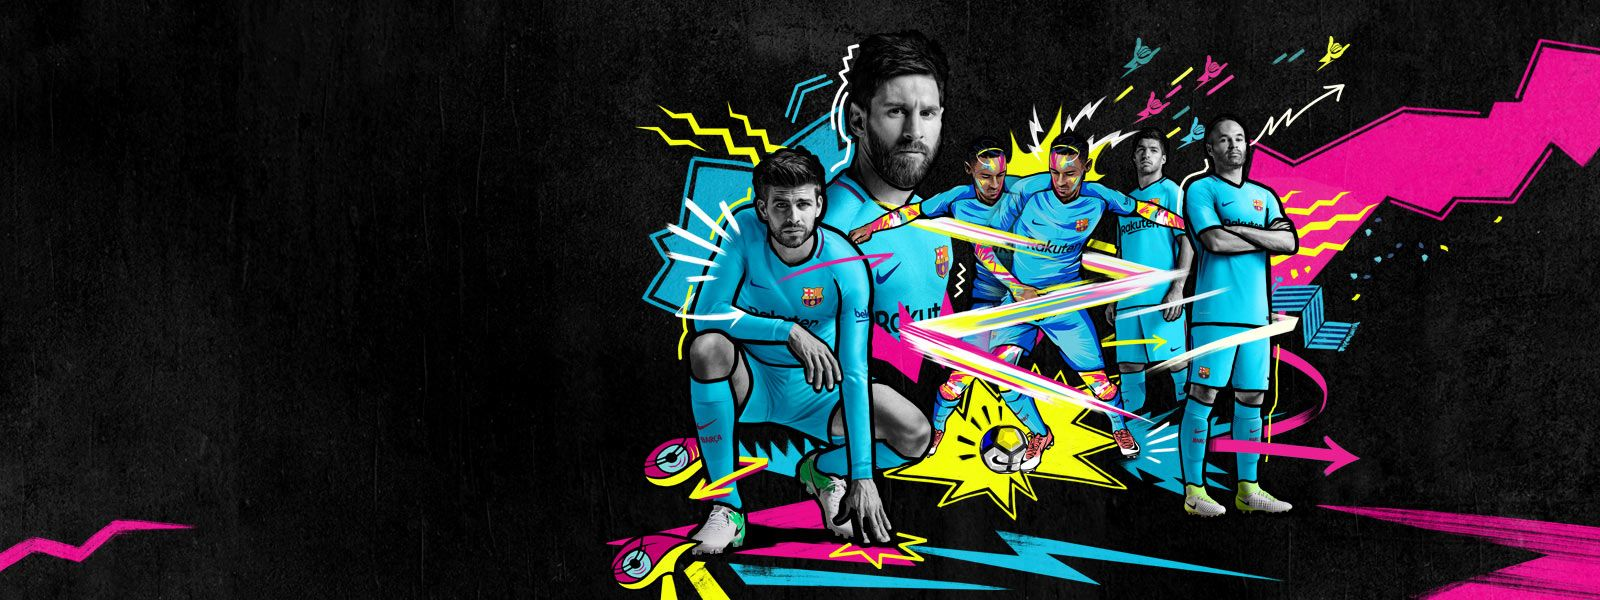 FC BARCELONA 20172018 KIT Picture Farm Production 1600x600